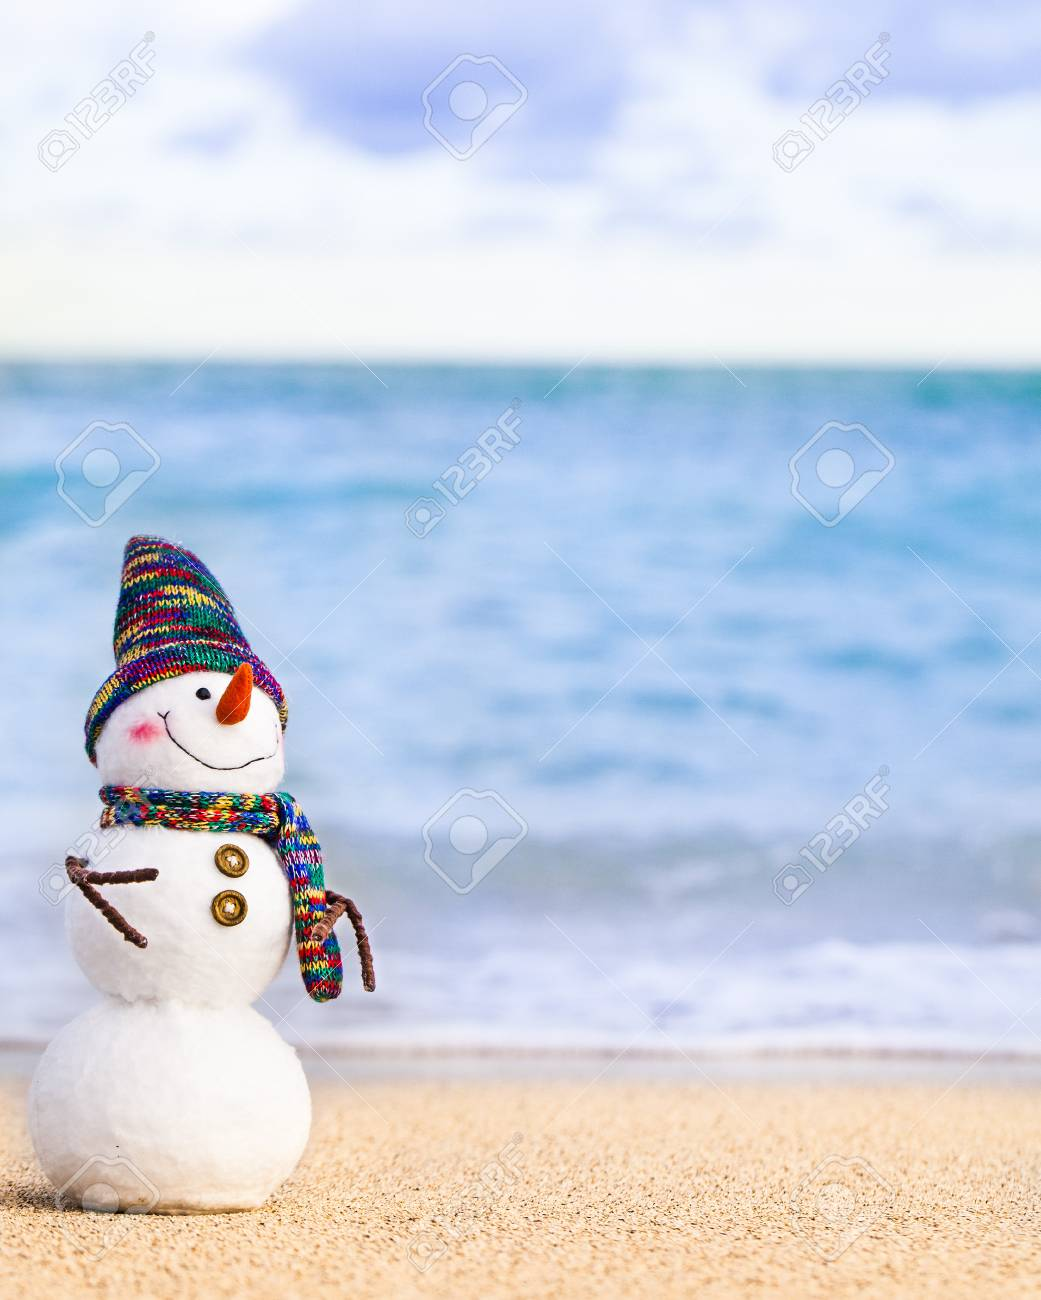 Smiling Snowman On The Sea Beach Holiday Concept Can Be Used